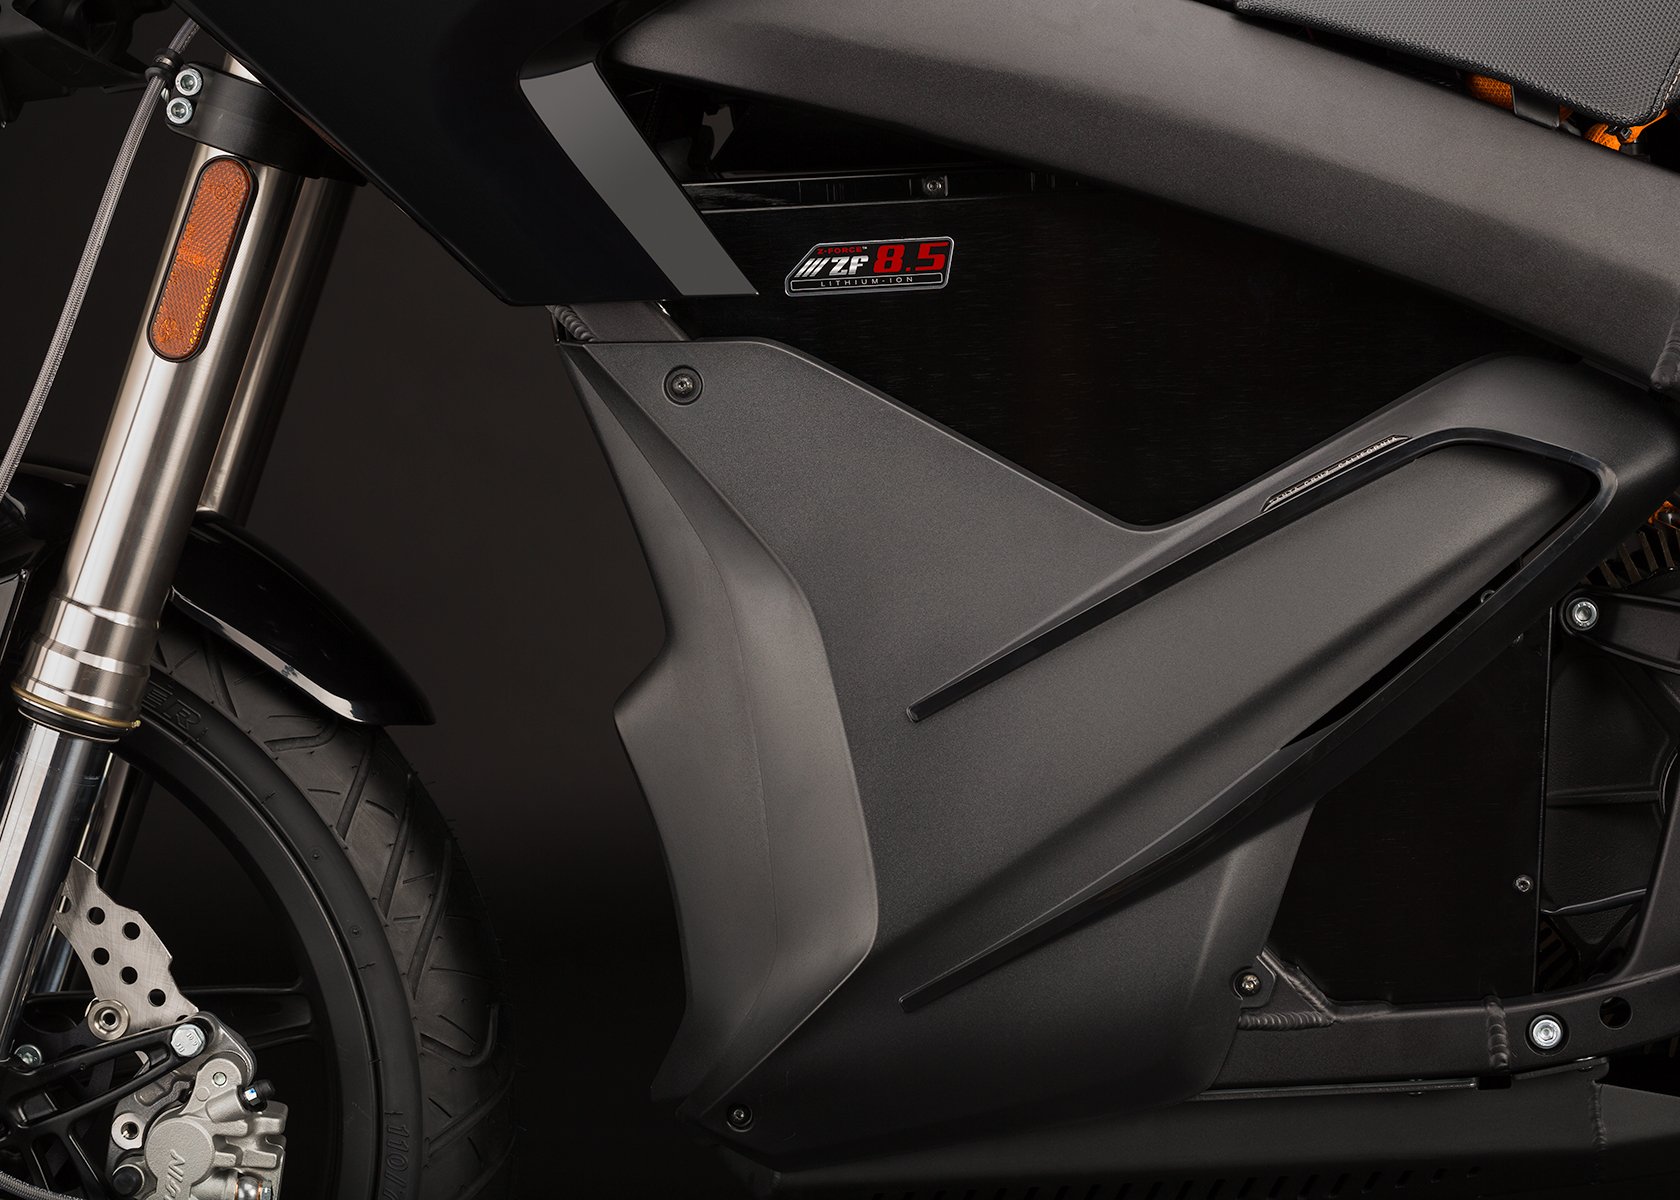 2014 Zero S Electric Motorcycle: Power Pack